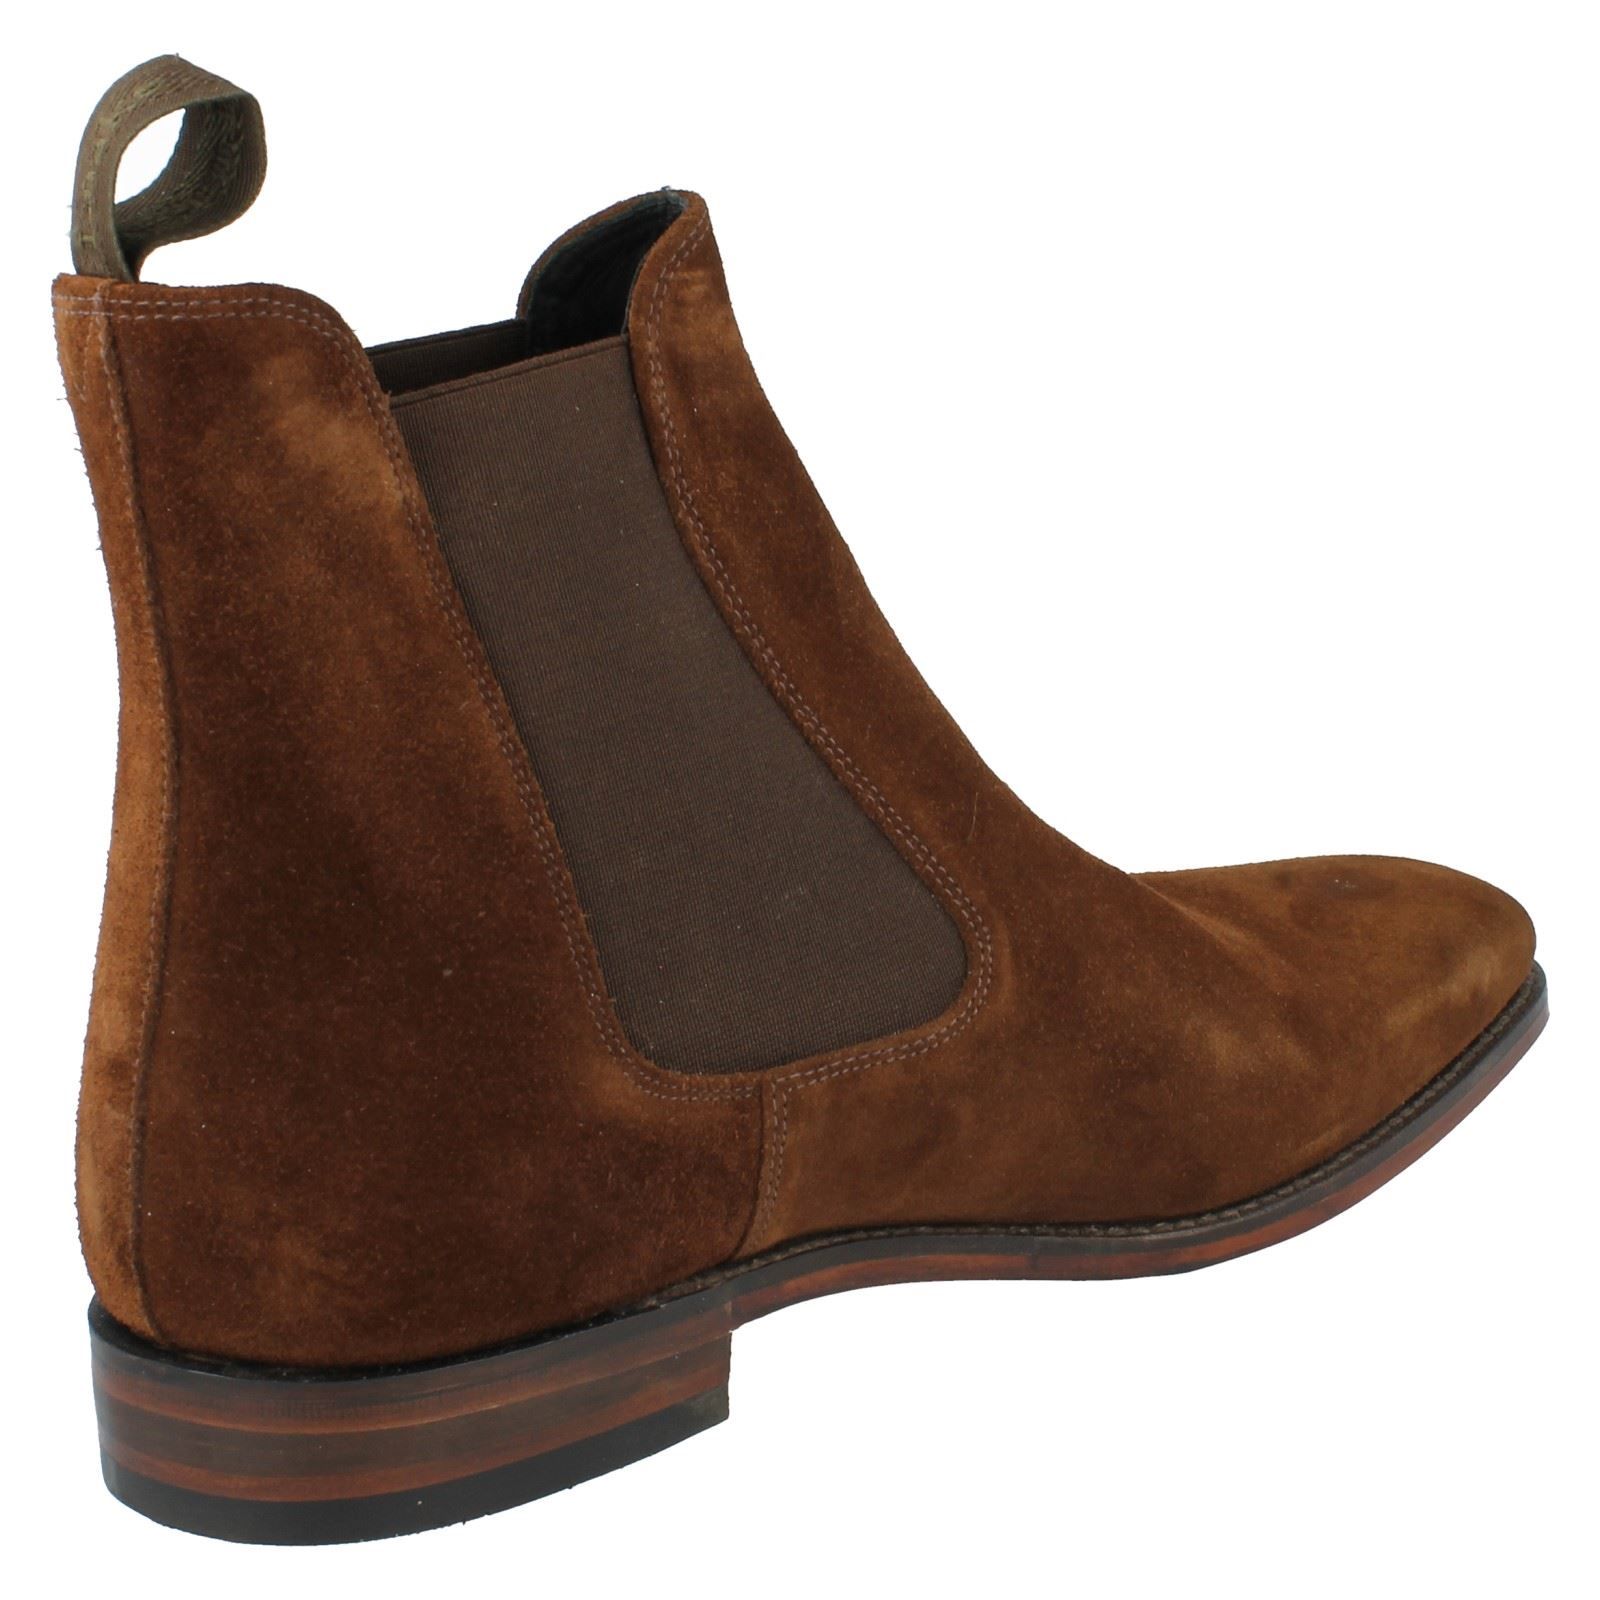 Mens Loake Slip On Ankle Boots Fitting F Style - Mitchum